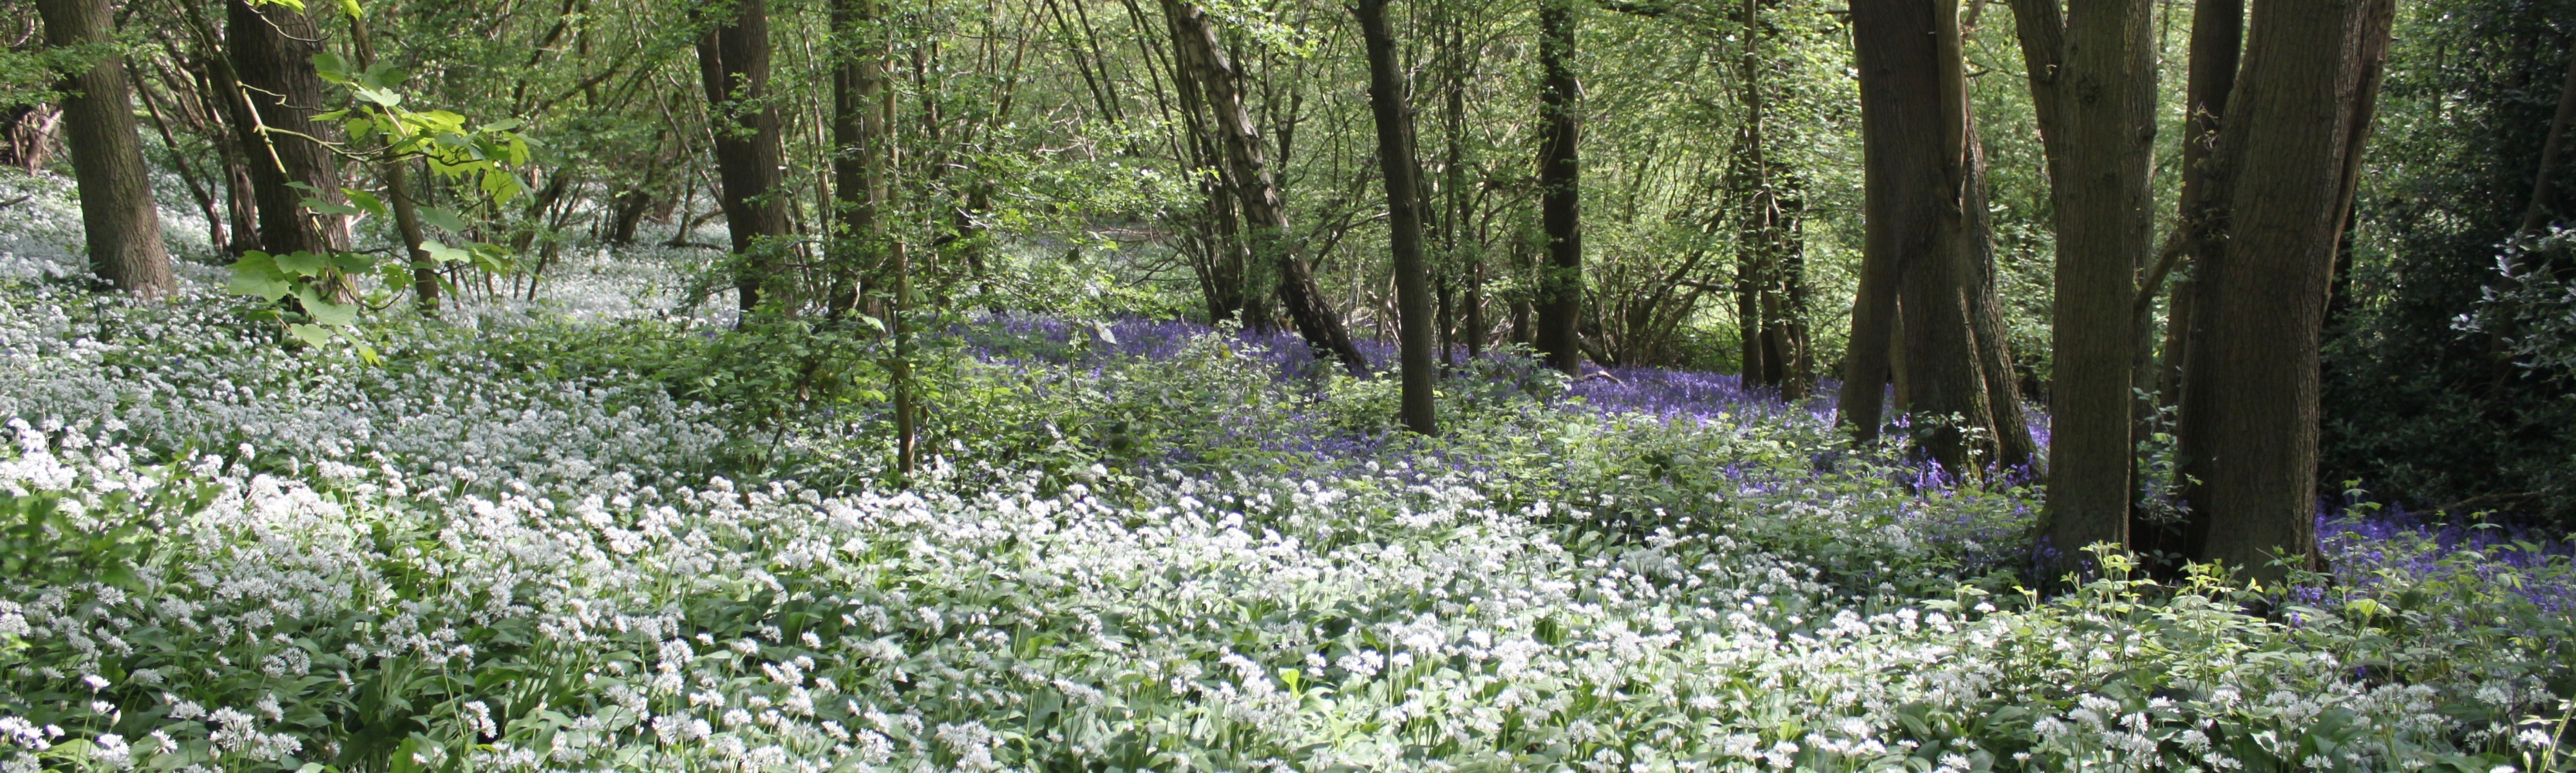 Wild garlic in full bloom in Crich Chase by Geoff Brown